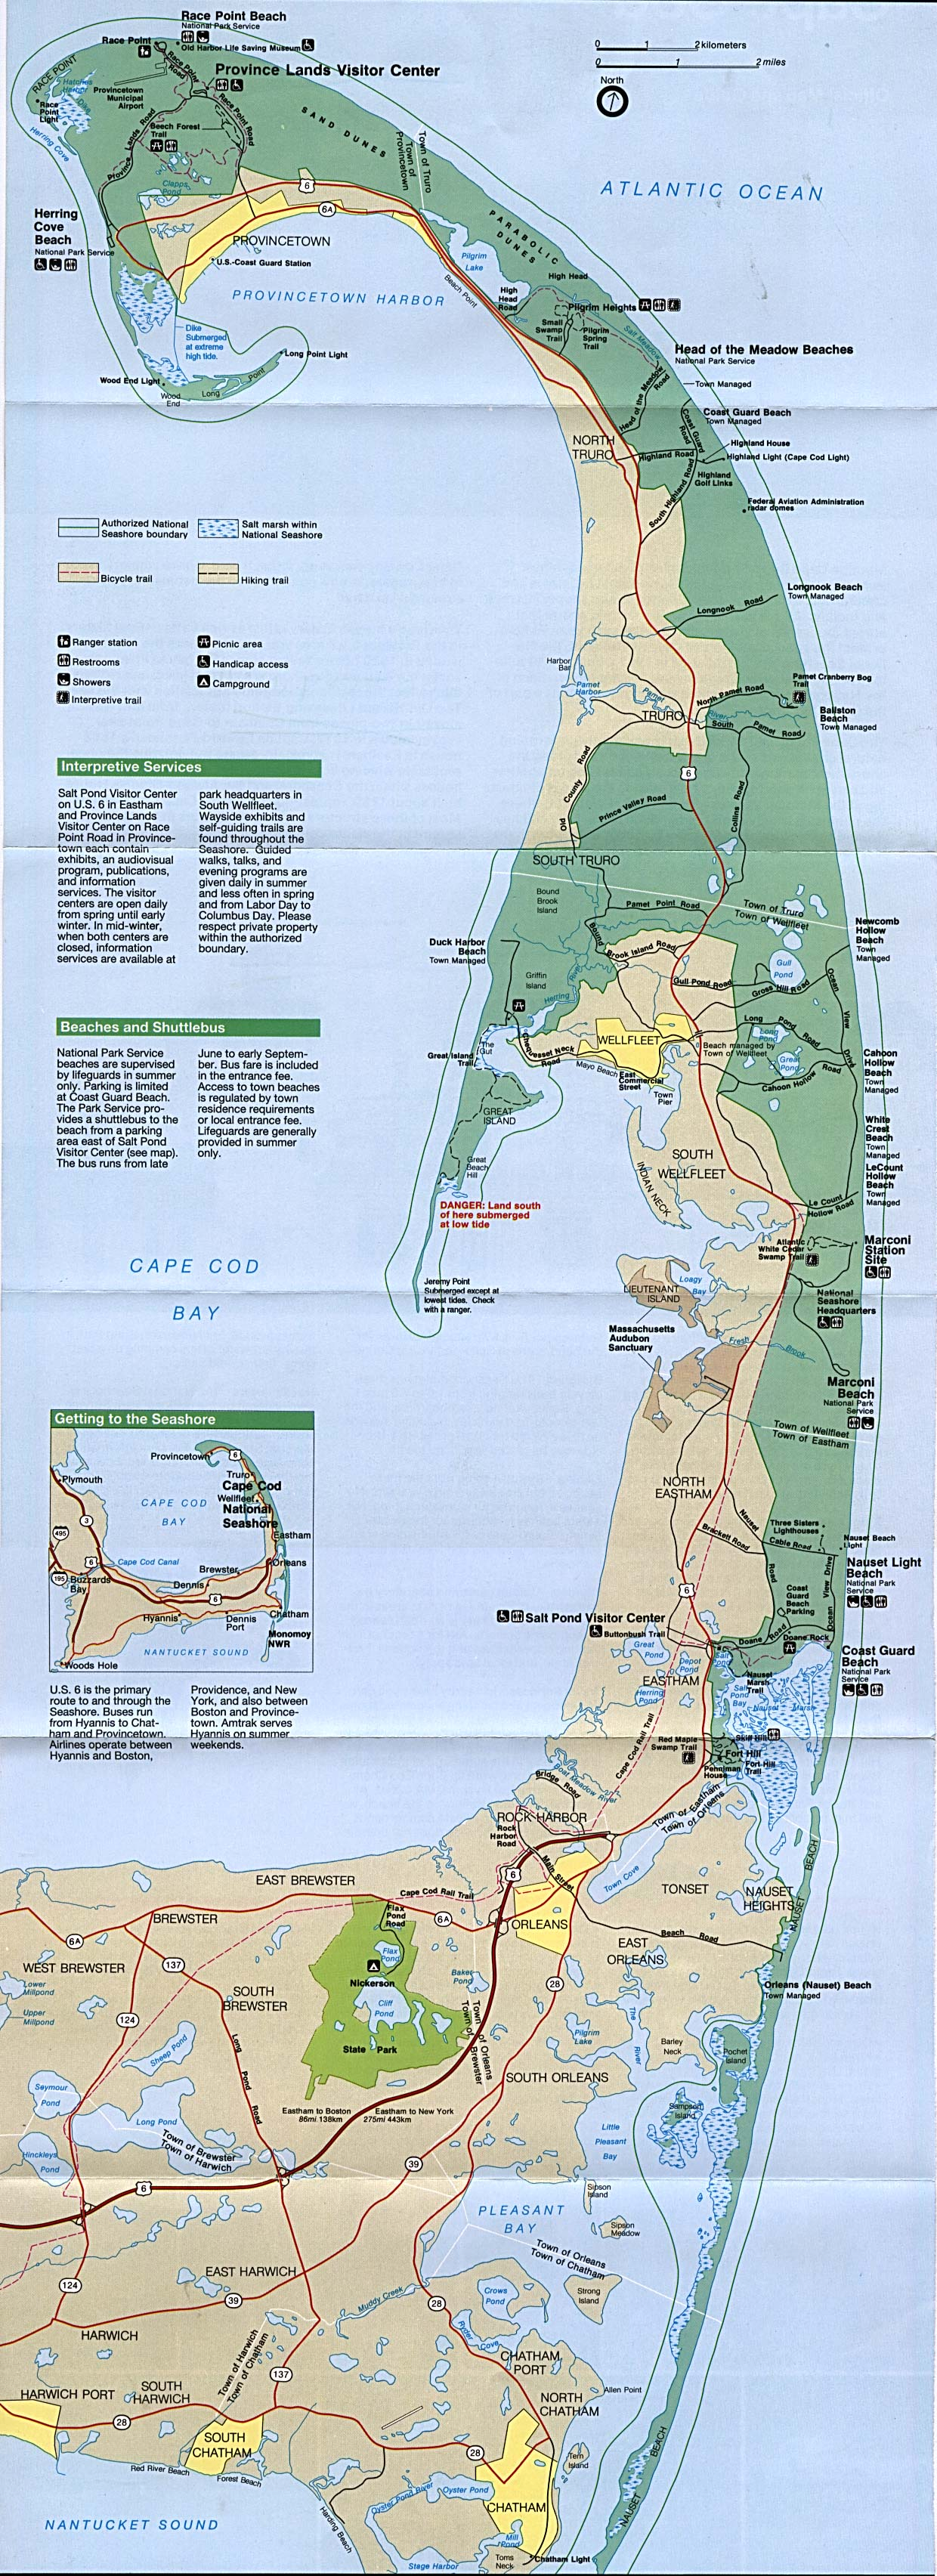 United States National Parks and Monuments Maps - Perry-Castañeda on